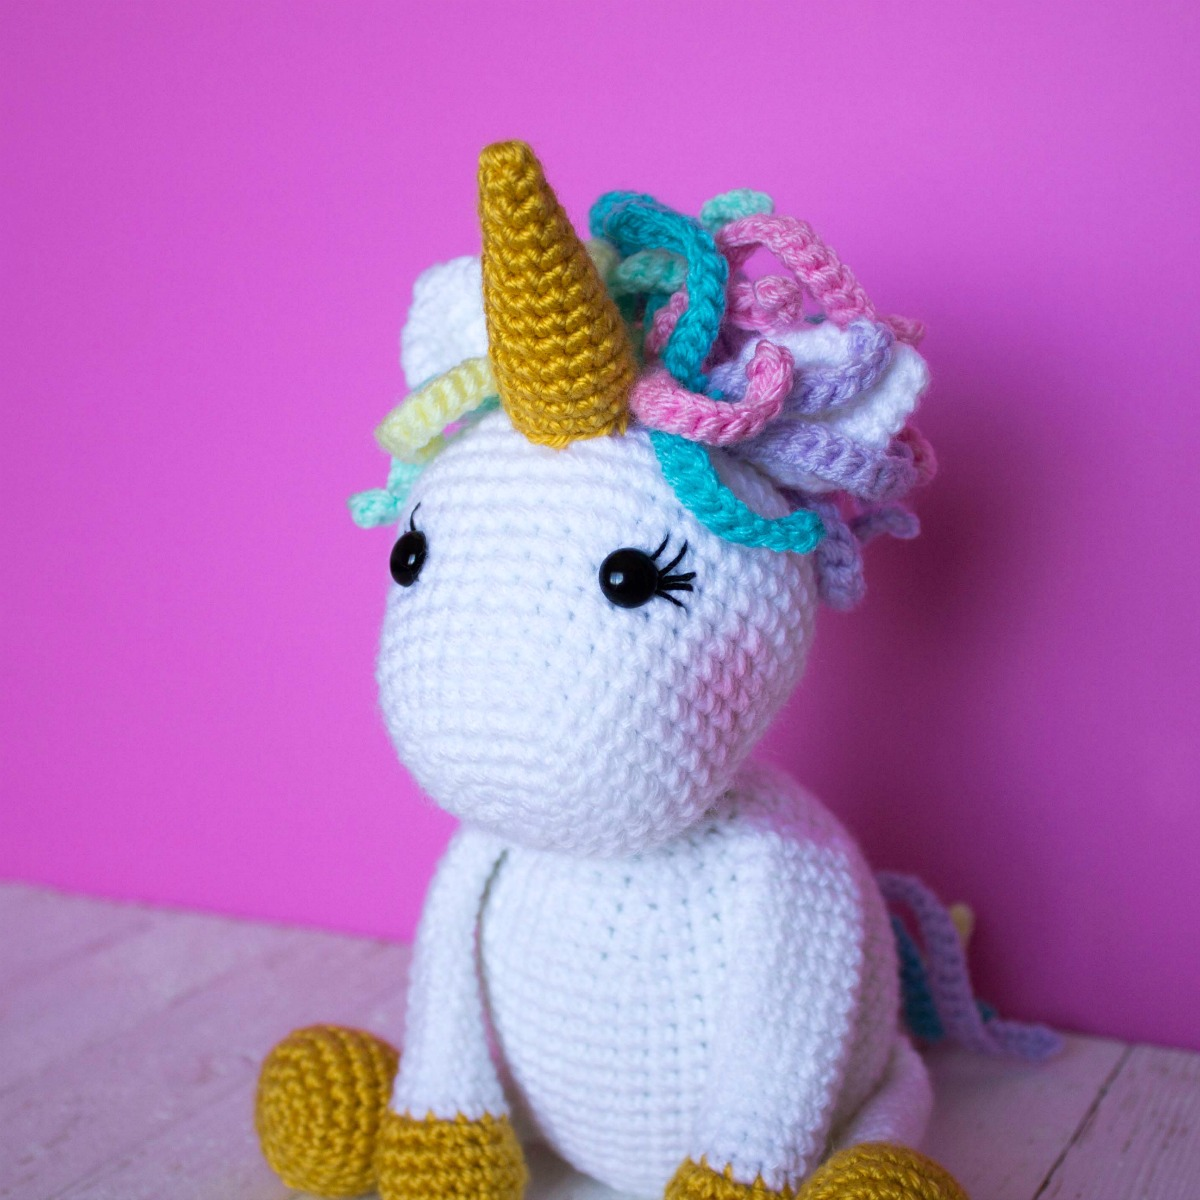 15 easy DIY knitting ideas - Page 10 of 16 | Crochet unicorn ... | 1200x1200